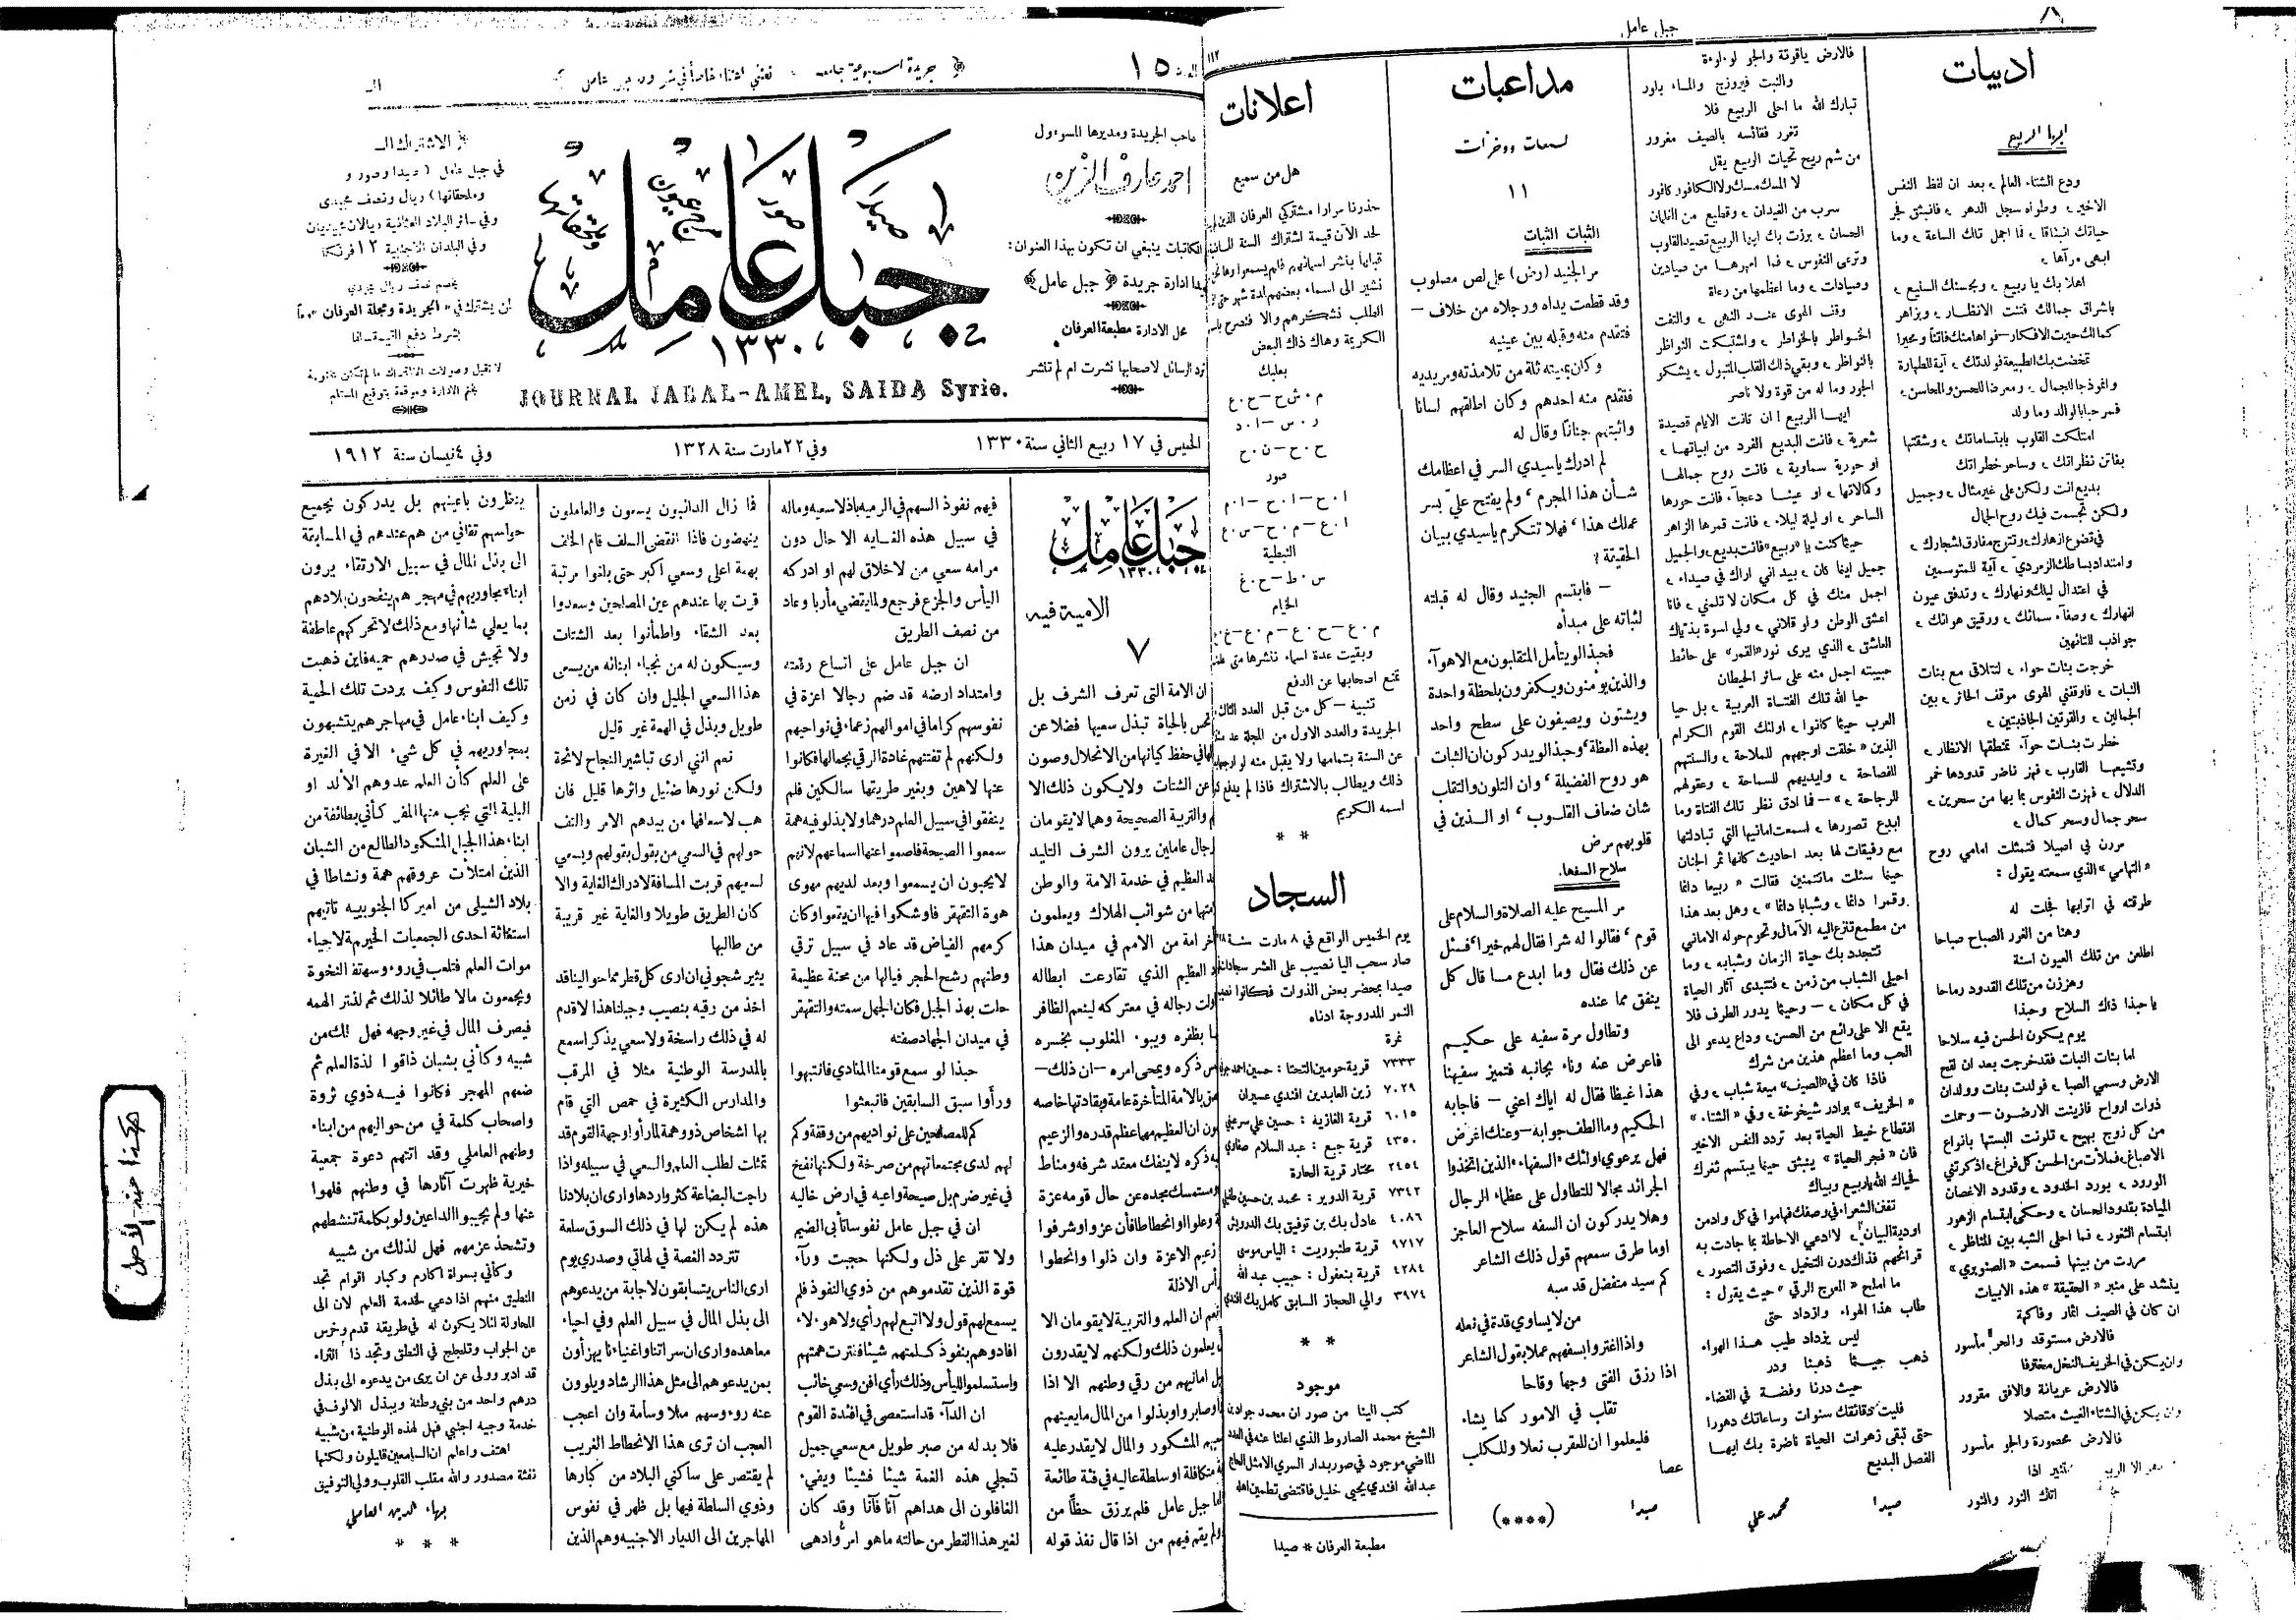 https://ia801900.us.archive.org/BookReader/BookReaderImages.php?zip=/22/items/JabalAmel1912OttomanEmpireArabic/Apr%2004%201912%2C%20%D8%AC%D8%A8%D9%84%20%D8%B9%D8%A7%D9%85%D9%84%20%28Jabal%20Amel%29%2C%20%2315%2C%20Ottoman%20Empire%20%28ar%29_jp2.zip&file=Apr%2004%201912%2C%20%D8%AC%D8%A8%D9%84%20%D8%B9%D8%A7%D9%85%D9%84%20%28Jabal%20Amel%29%2C%20%2315%2C%20Ottoman%20Empire%20%28ar%29_jp2/Apr%2004%201912%2C%20%D8%AC%D8%A8%D9%84%20%D8%B9%D8%A7%D9%85%D9%84%20%28Jabal%20Amel%29%2C%20%2315%2C%20Ottoman%20Empire%20%28ar%29_0000.jp2&id=JabalAmel1912OttomanEmpireArabic&scale=2&rotate=0